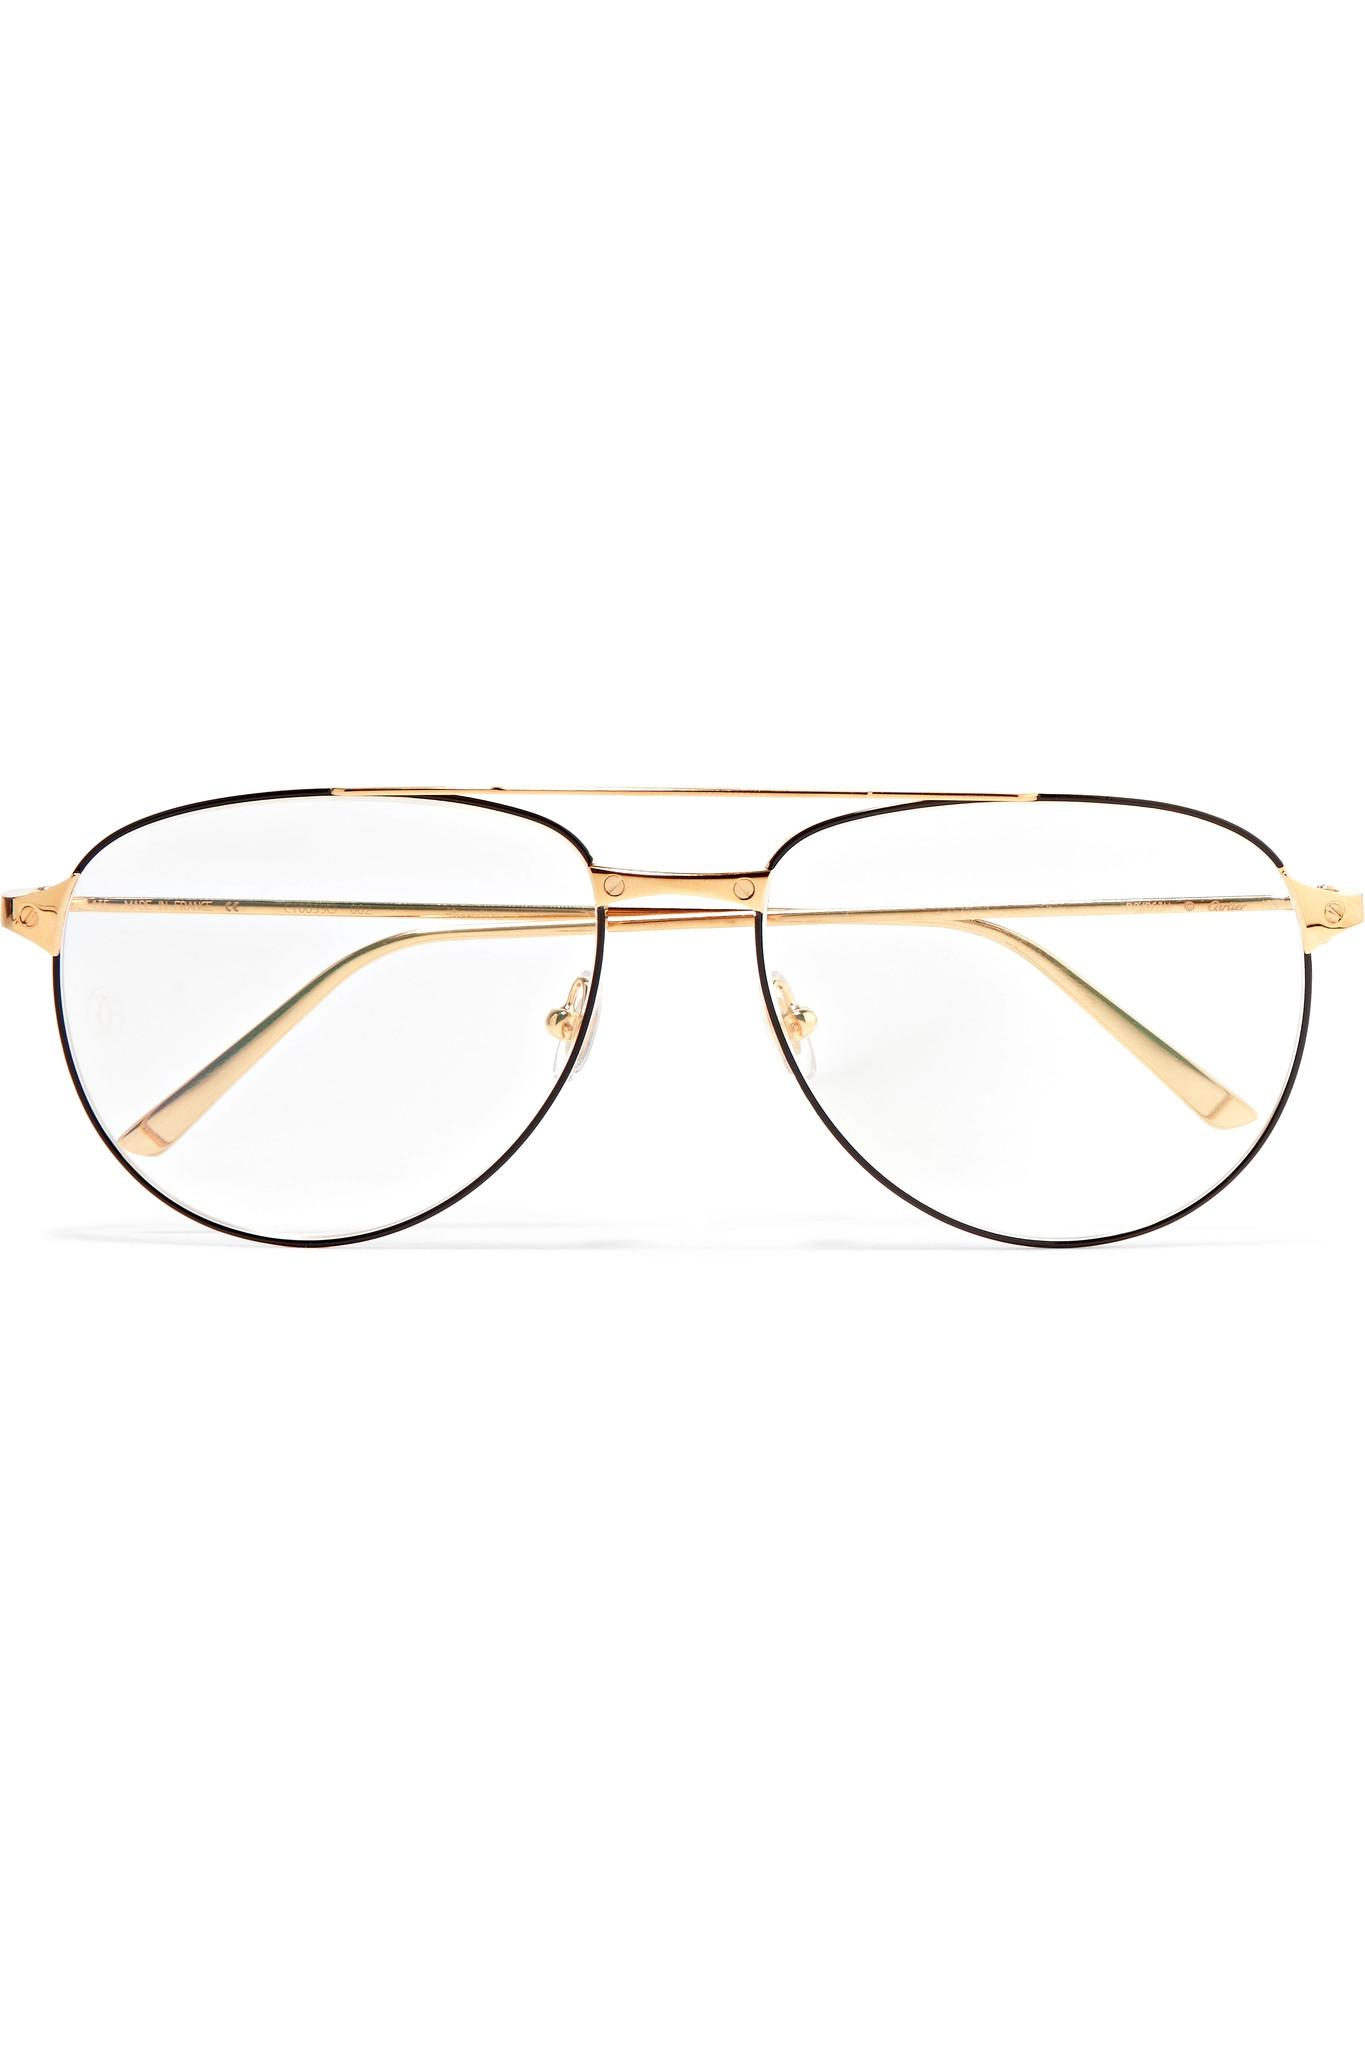 4e8f43661552 Cartier Aviator-style Gold And Silver-tone Optical Glasses in ...